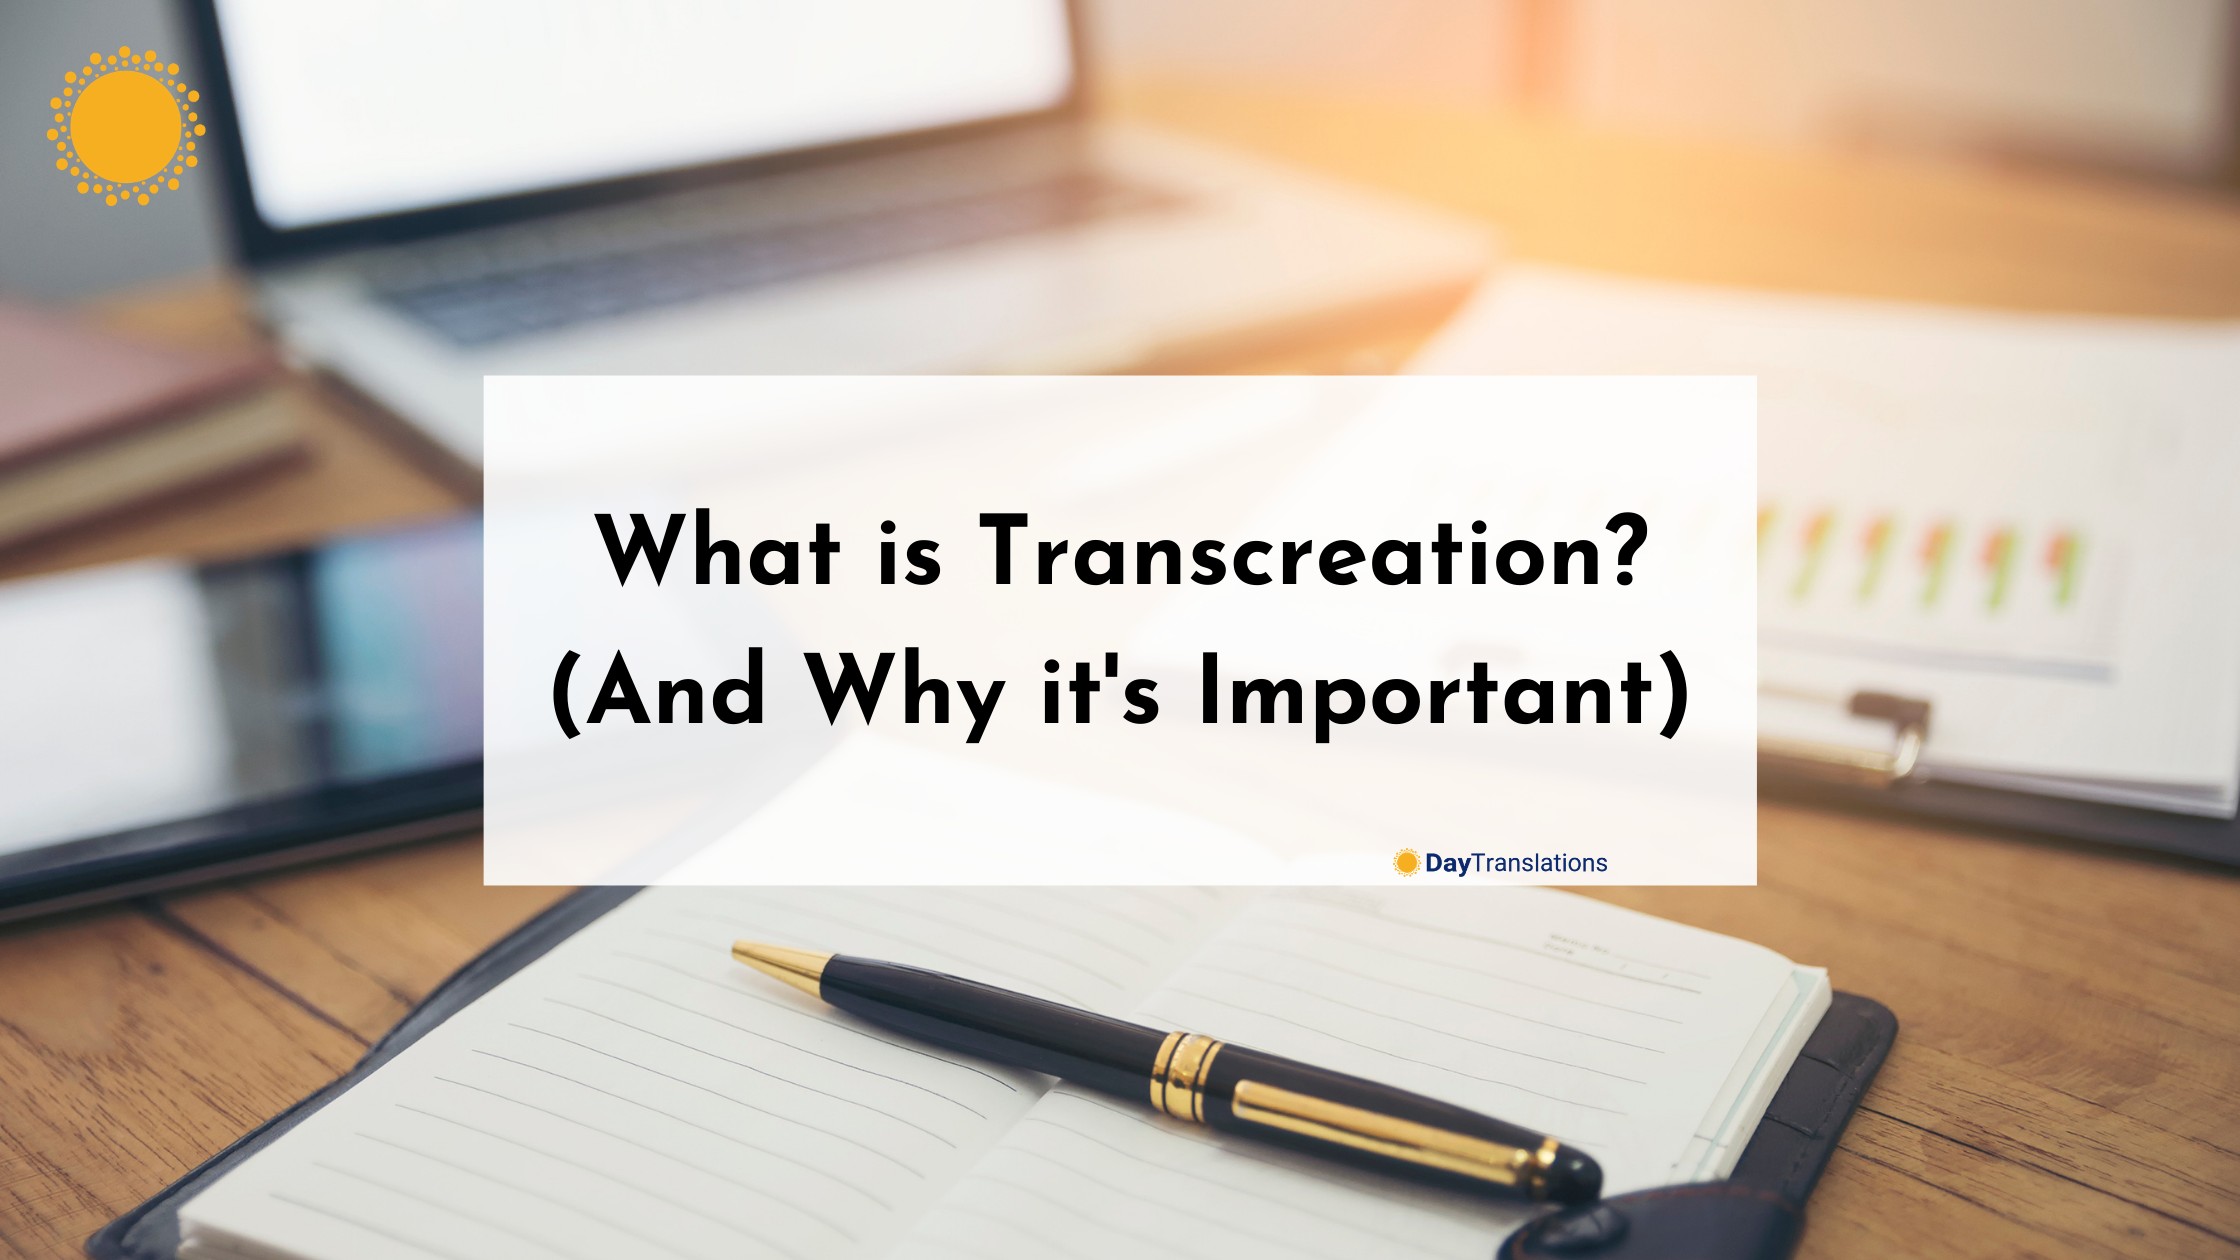 What is Transcreation? (And Why it's Important)